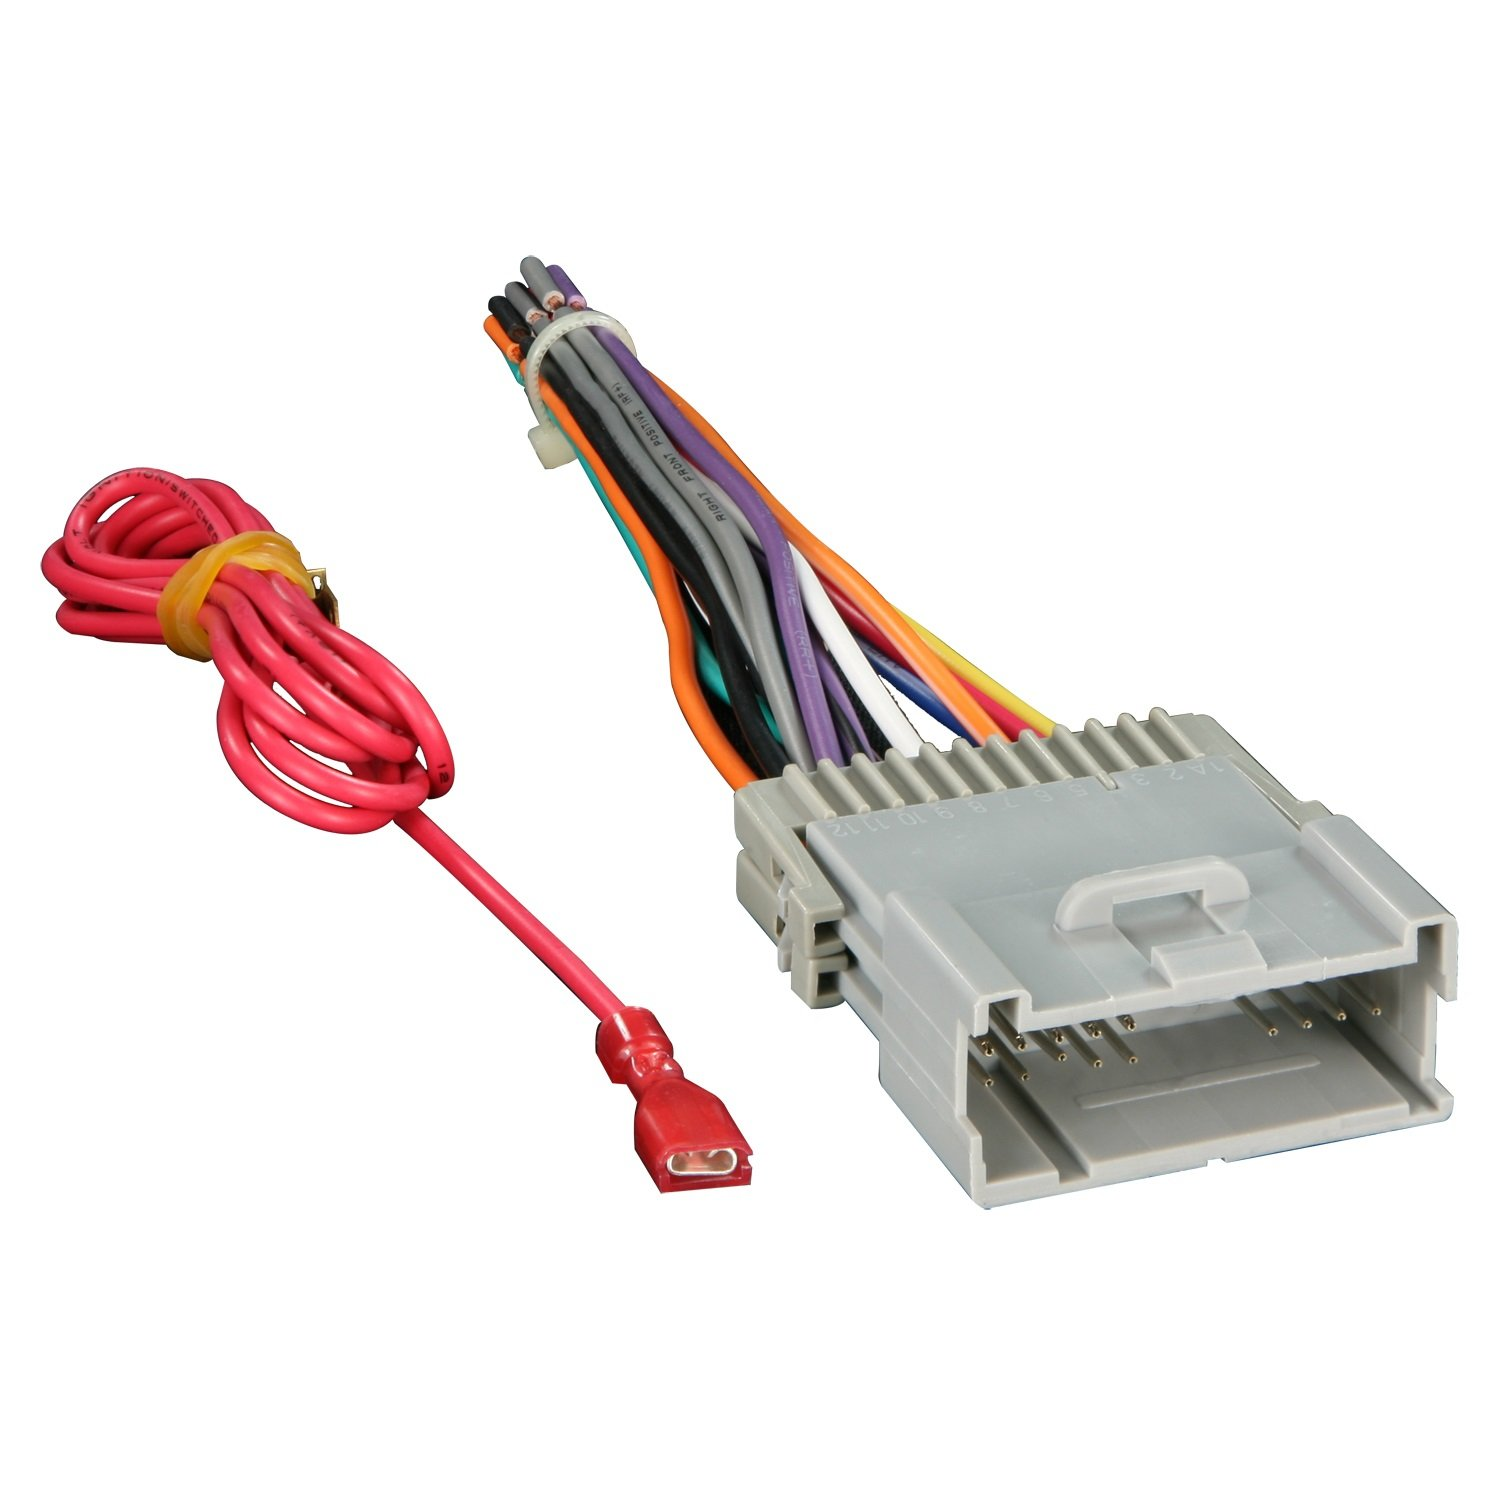 61eewxp9orL._SL1500_ amazon com metra 70 2003 radio wiring harness for gm 98 08 kenwood stereo wiring harness adapter at webbmarketing.co